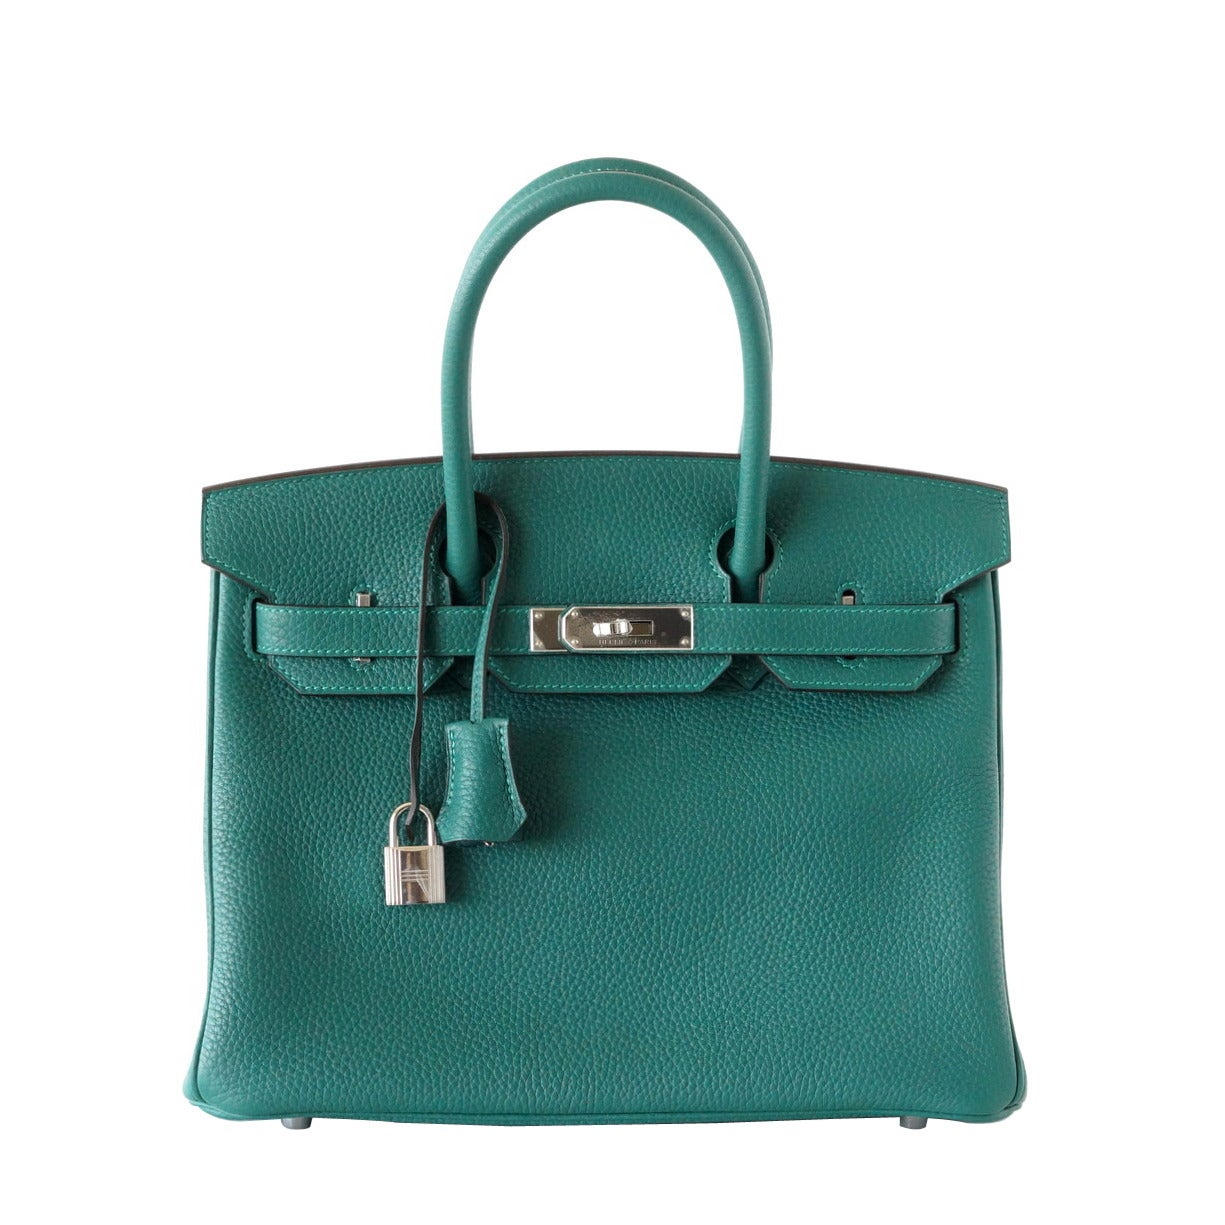 Hermes Birkin 30 Bag Exotic Emerald Toned Malachite Clemence Palladium